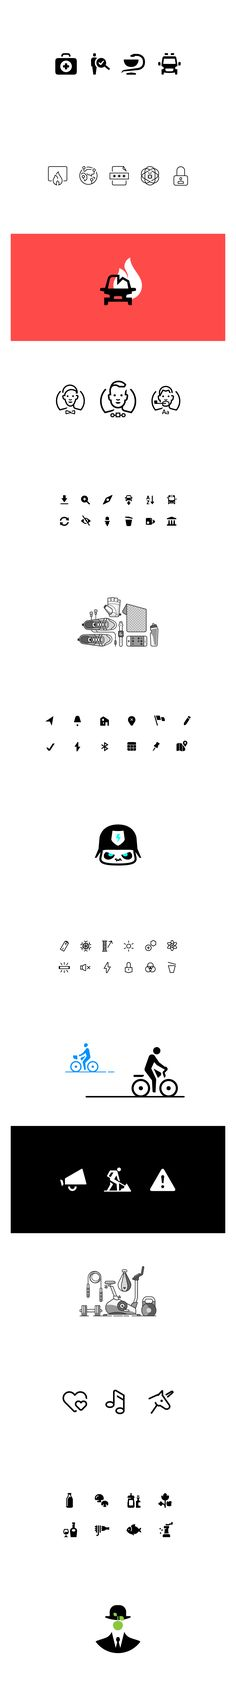 Various icons and pictograms 2015